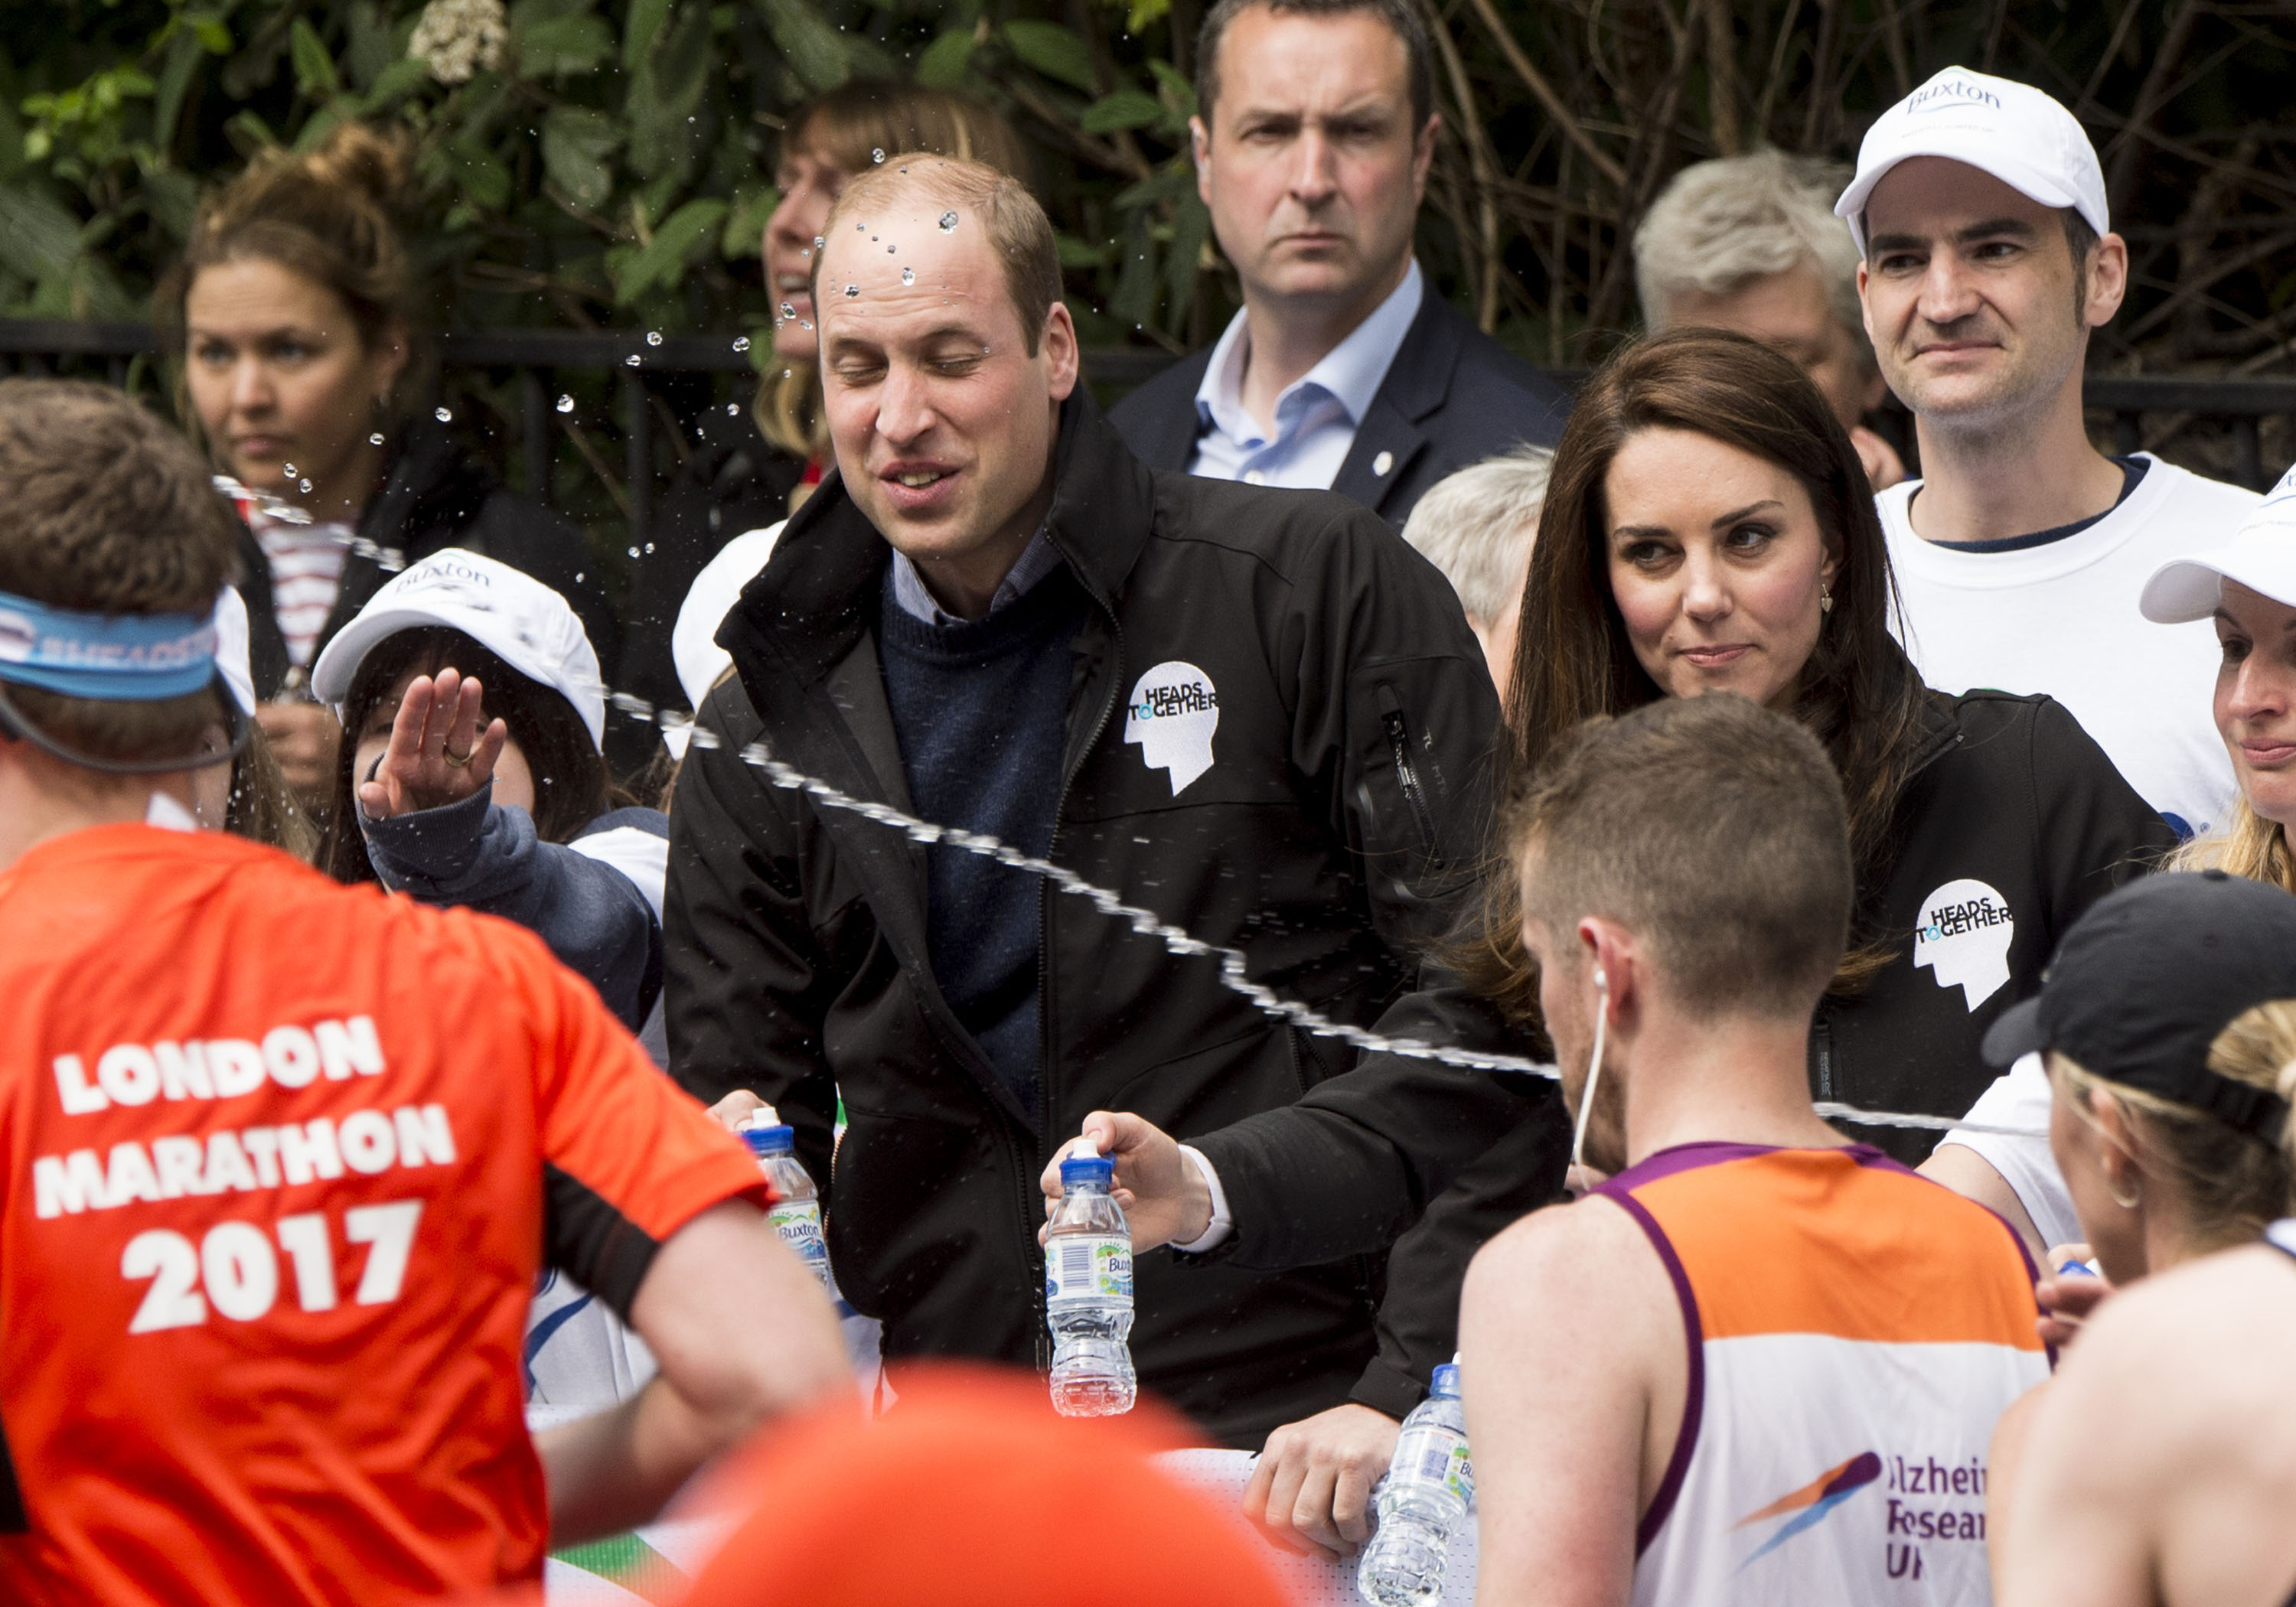 Catherine, Duchess of Cambridge with Prince William, Duke of Cambridge as he gets squirted with water at a water station during the 2017 Virgin Money London Marathon in London, England, on April 23, 2017.